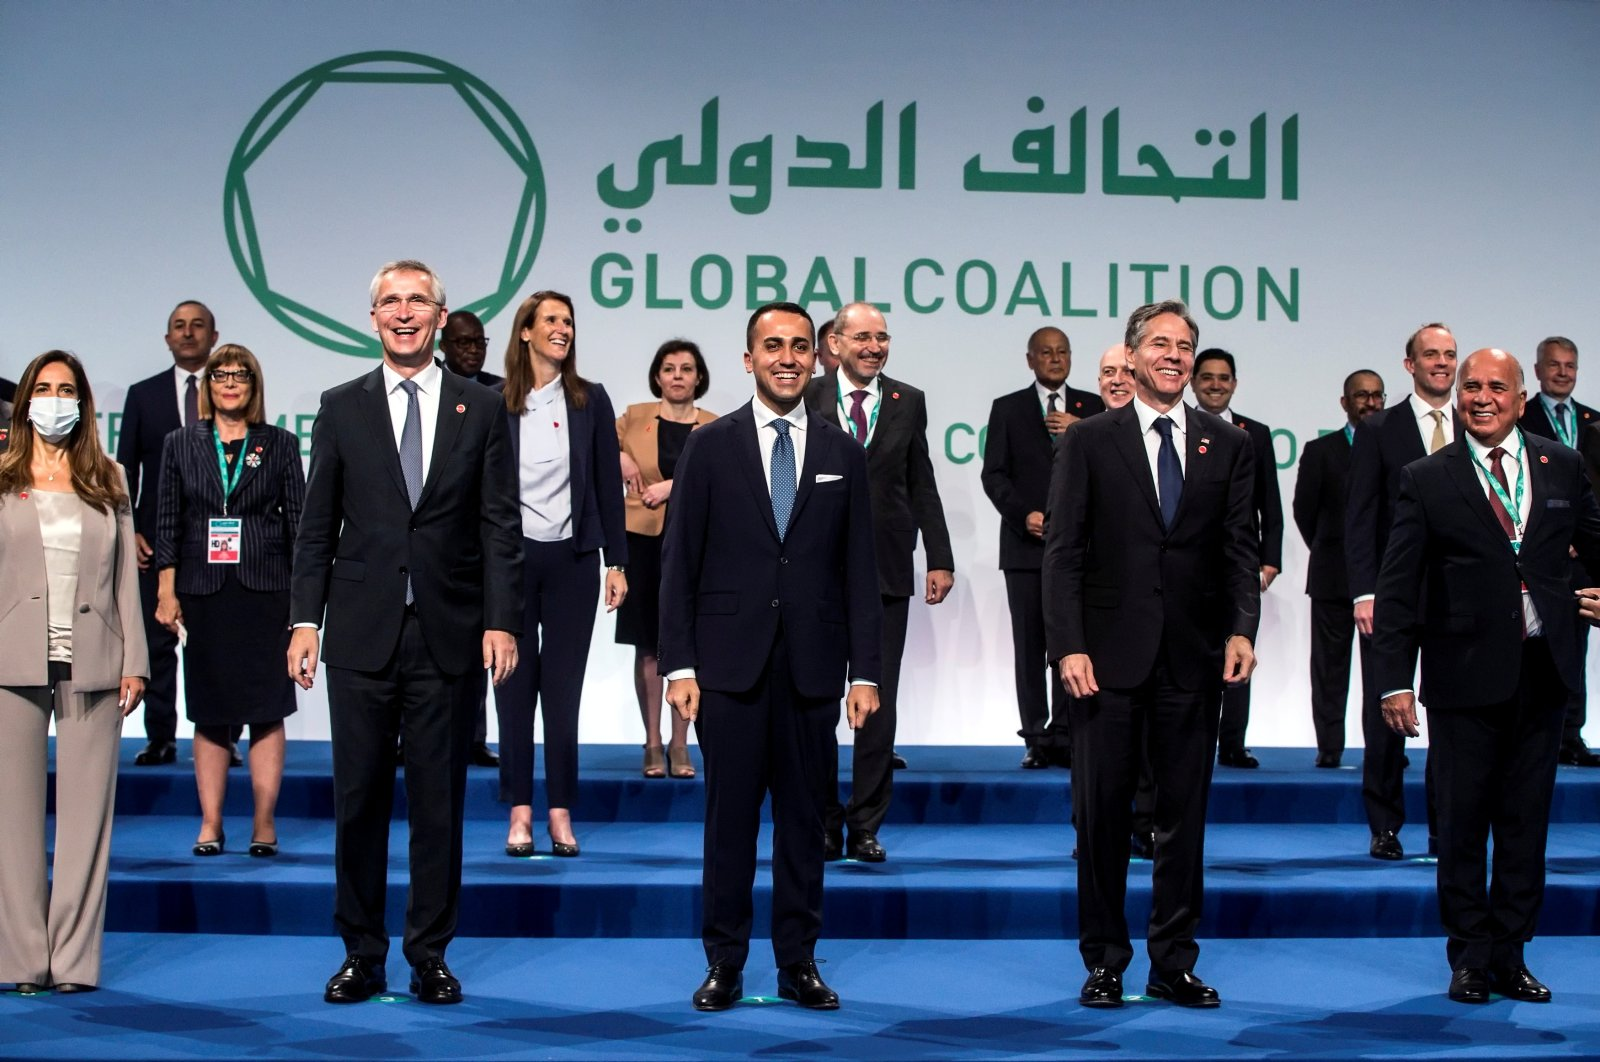 Participants pose for a group photo at the Ministerial Meeting of the Global Coalition to Defeat Daesh, in Rome, Italy, June 28, 2021. (REUTERS Photo)